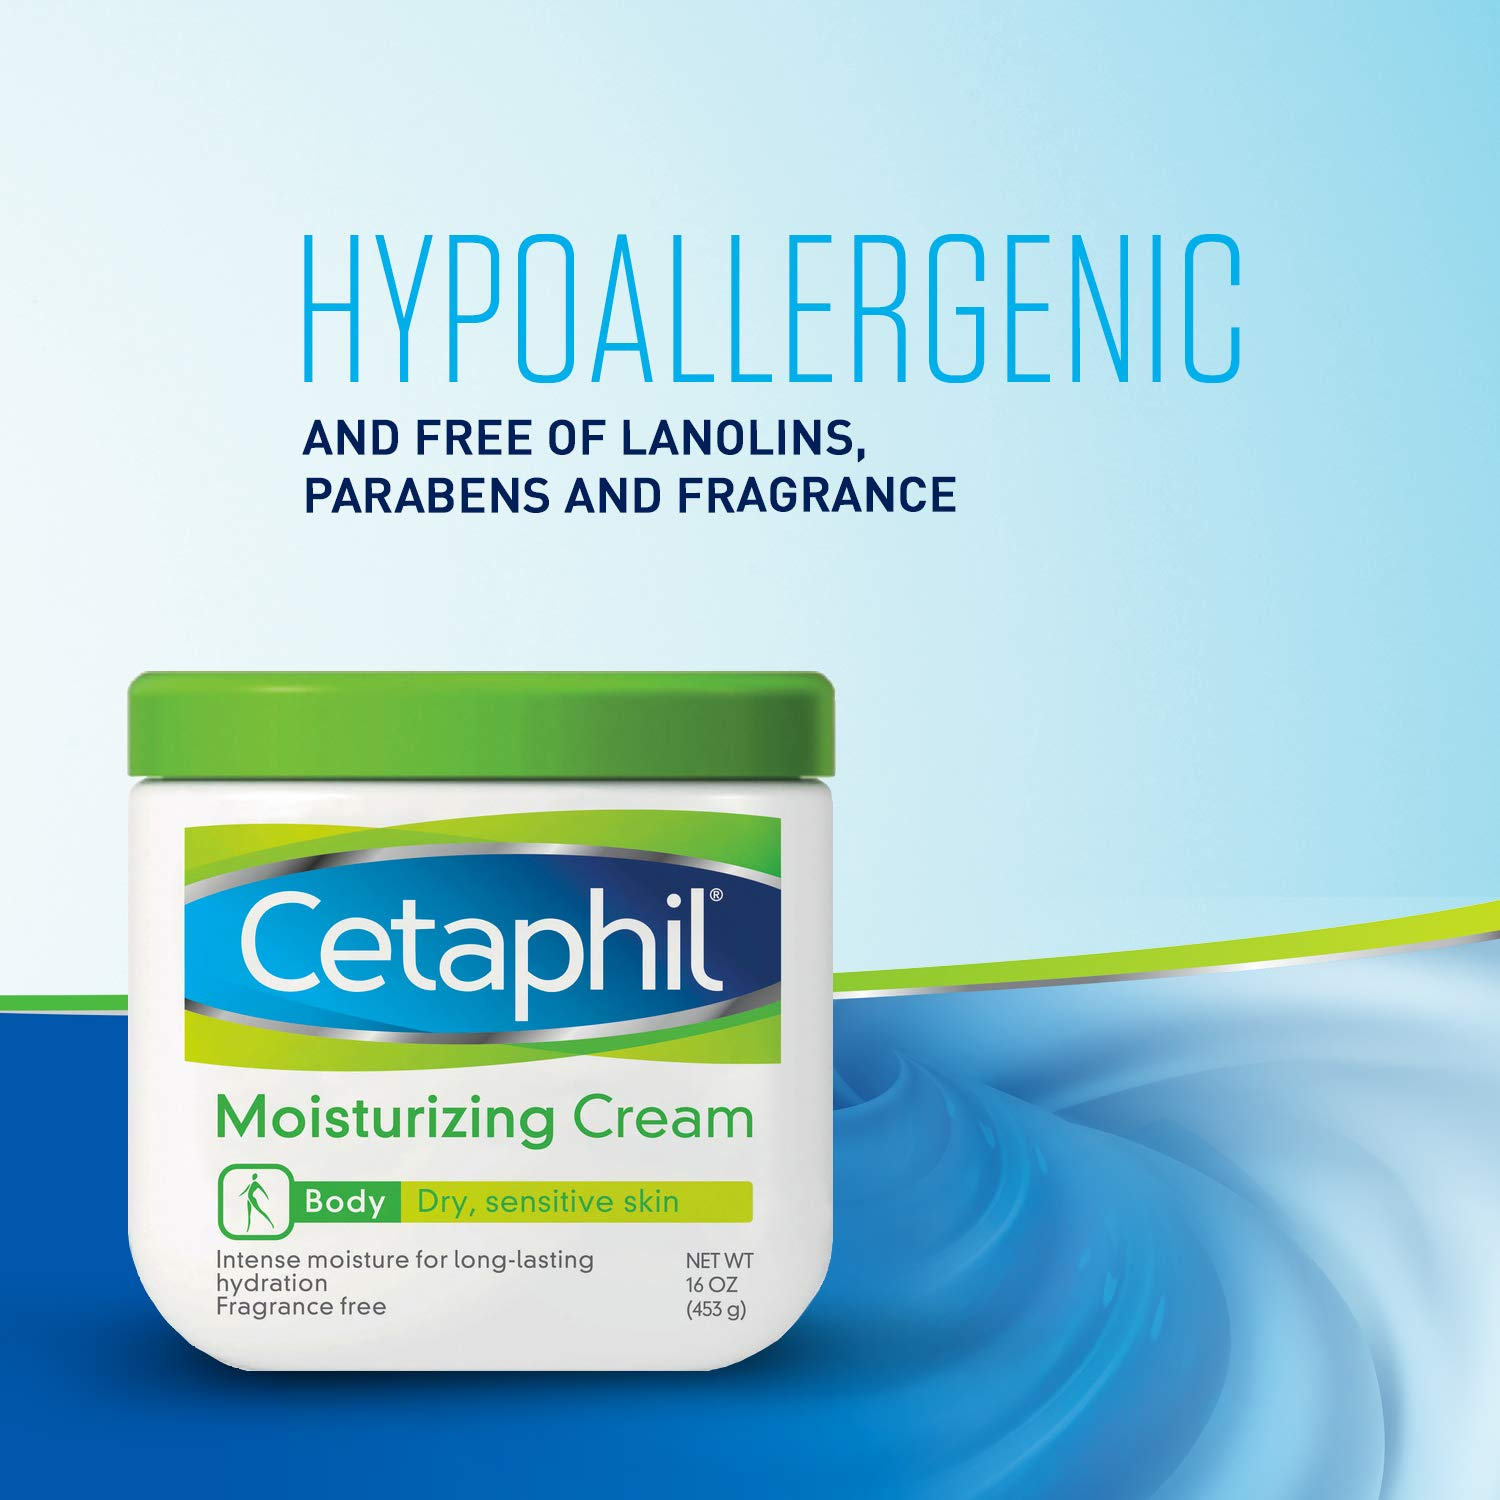 Cetaphil Moisturizing Cream for Very Dry/Sensitive Skin, Fragrance Free, 16 Ounce, Pack of 3 by Cetaphil (Image #5)